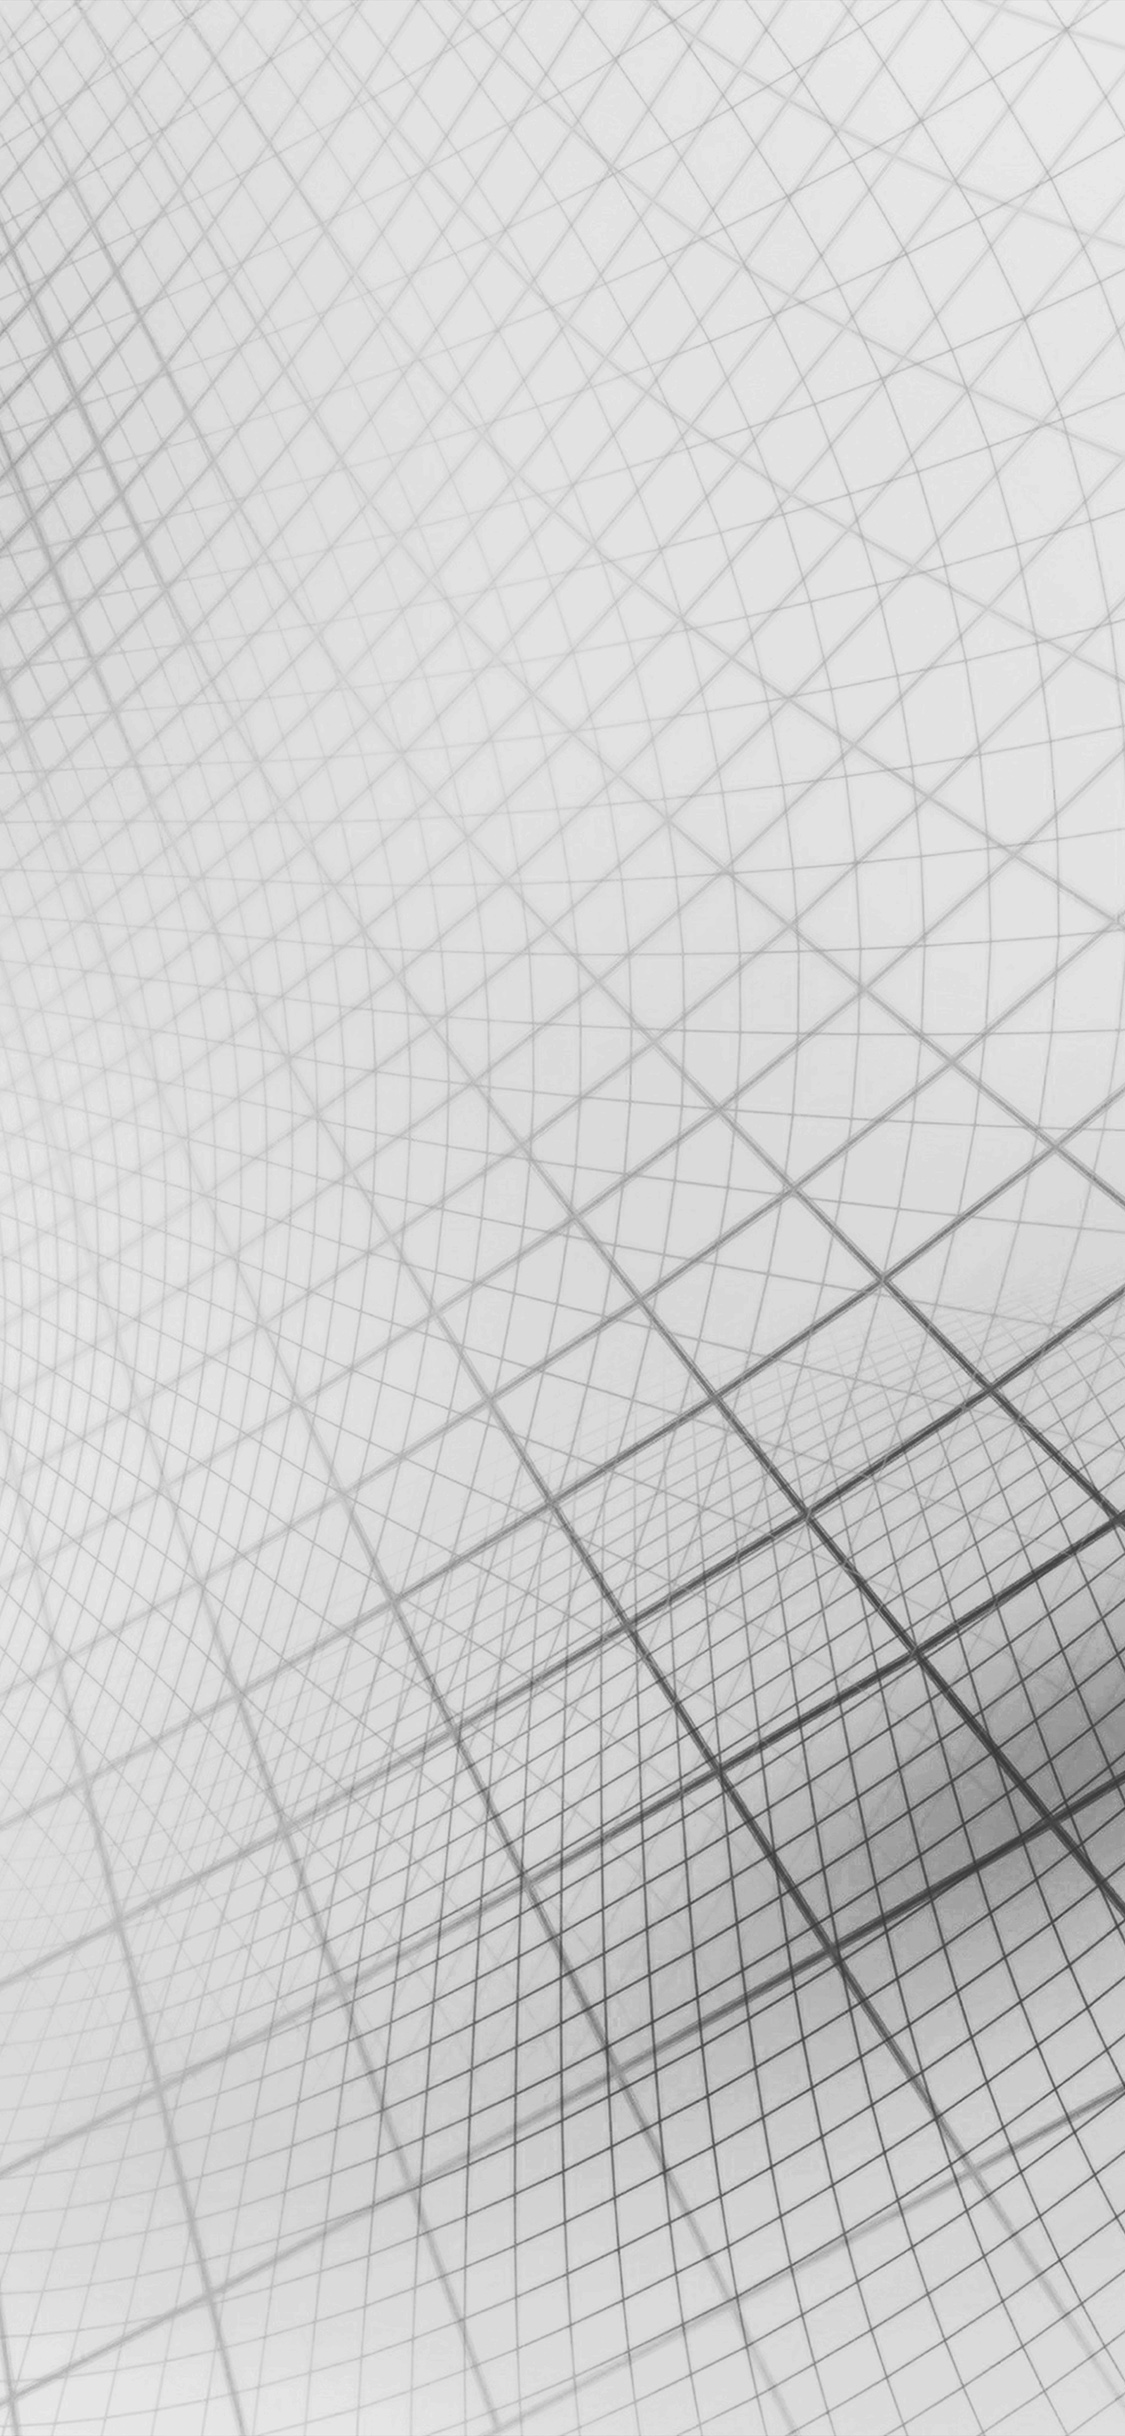 iPhoneXpapers.com-Apple-iPhone-wallpaper-vt20-abstract-line-digital-white-bw-pattern